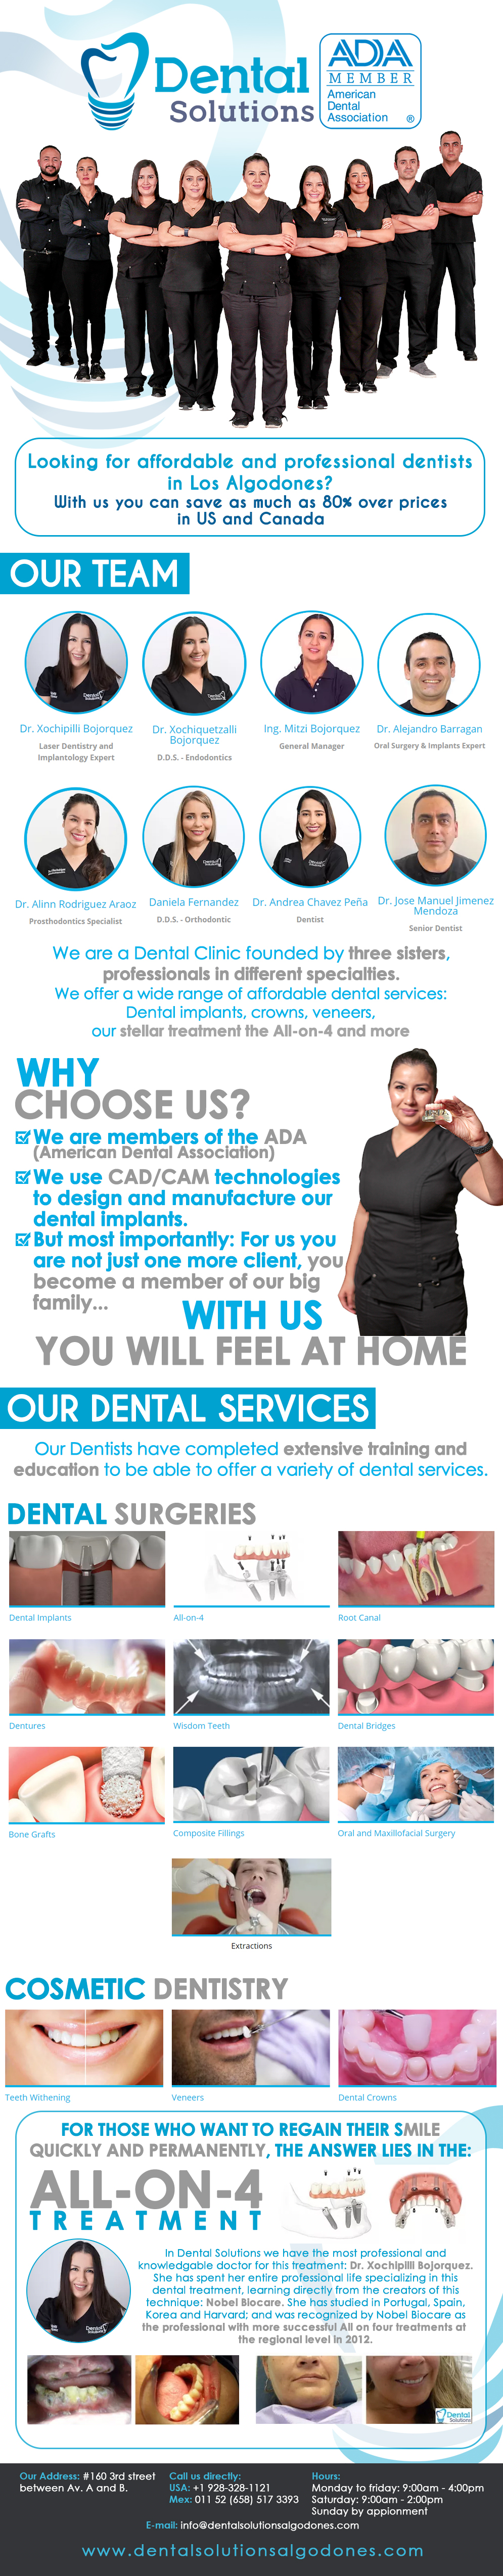 Dental Solutions Xochipilli Bojorquez DDS in Algodones  in Algodones  In Dental Solutions, we offer you the best treatments you need to regain your smile.